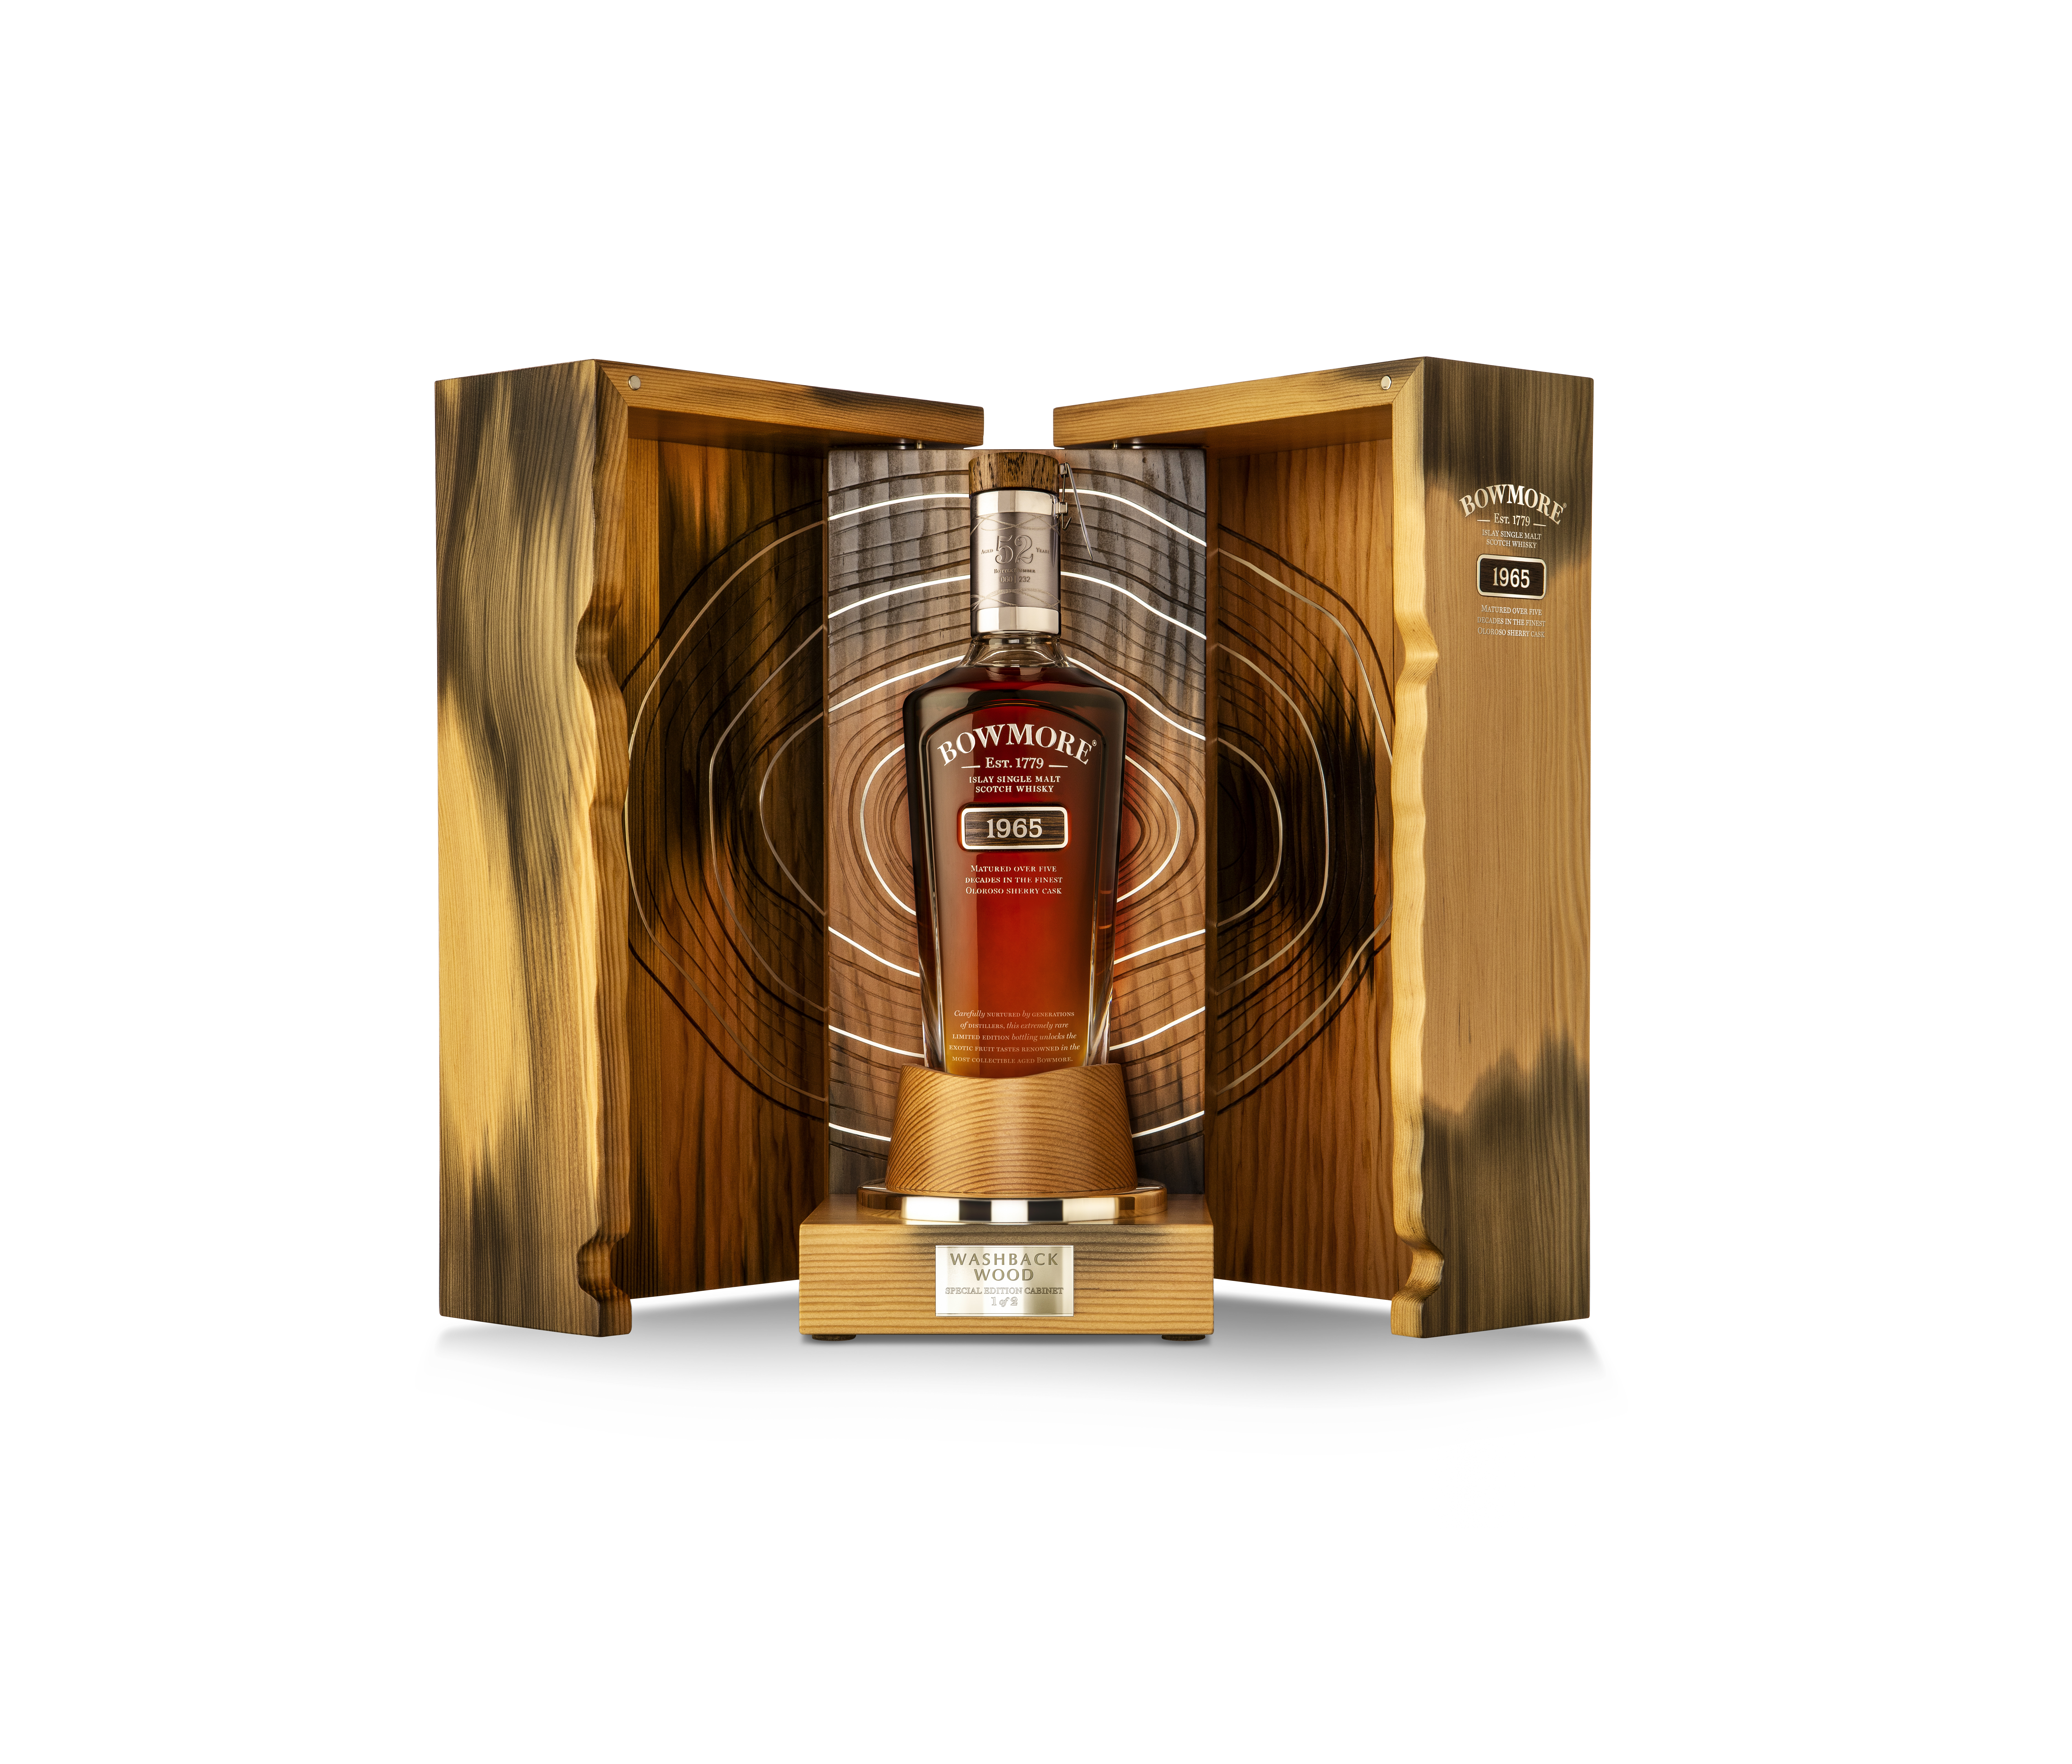 https://www.bowmore.com/sites/default/files/2020-02/bowmore_1965_final_layered_wg-2a_0.png